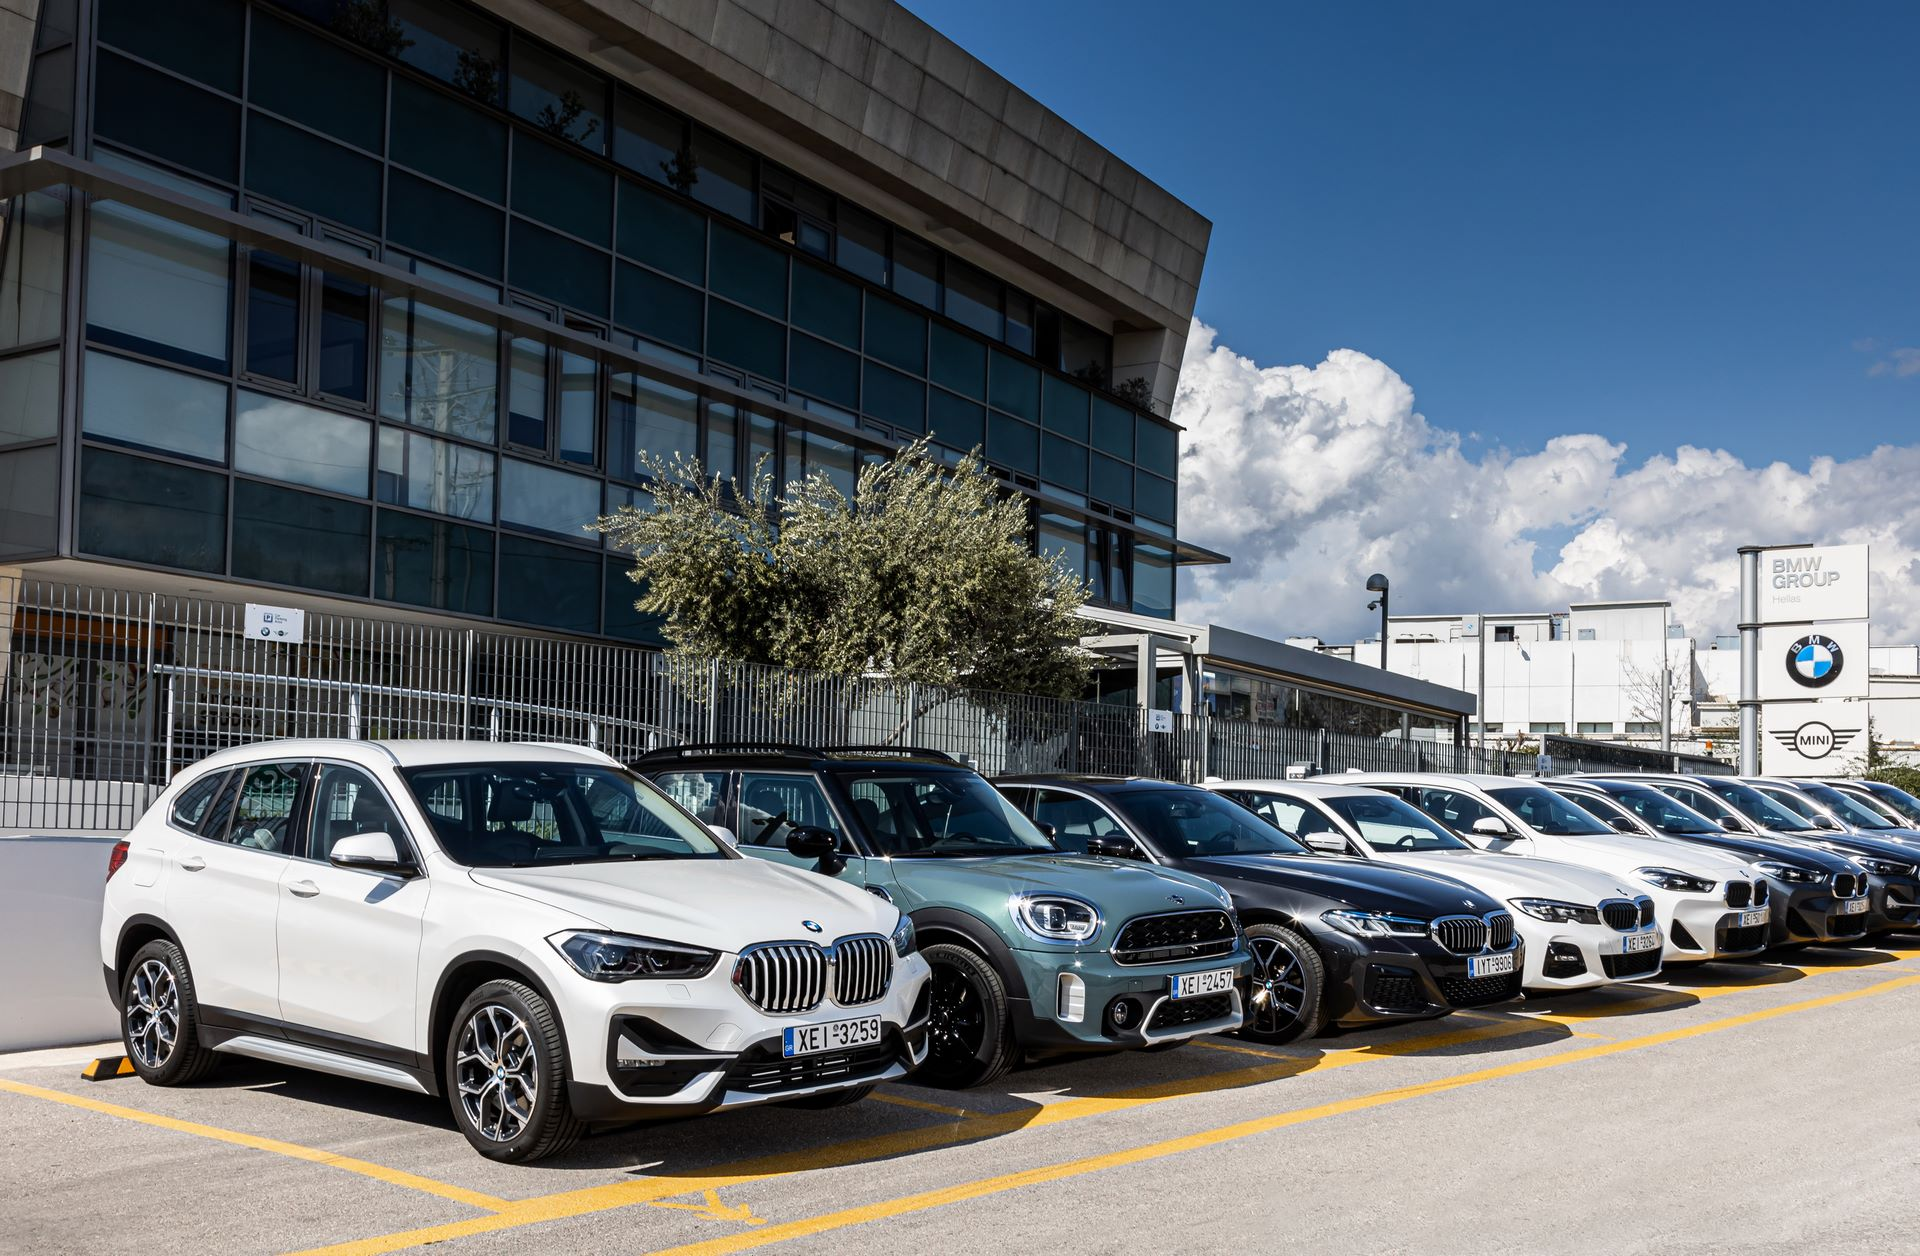 BMW-Group-Hellas-EV-Electric-Chargers-Charging-17